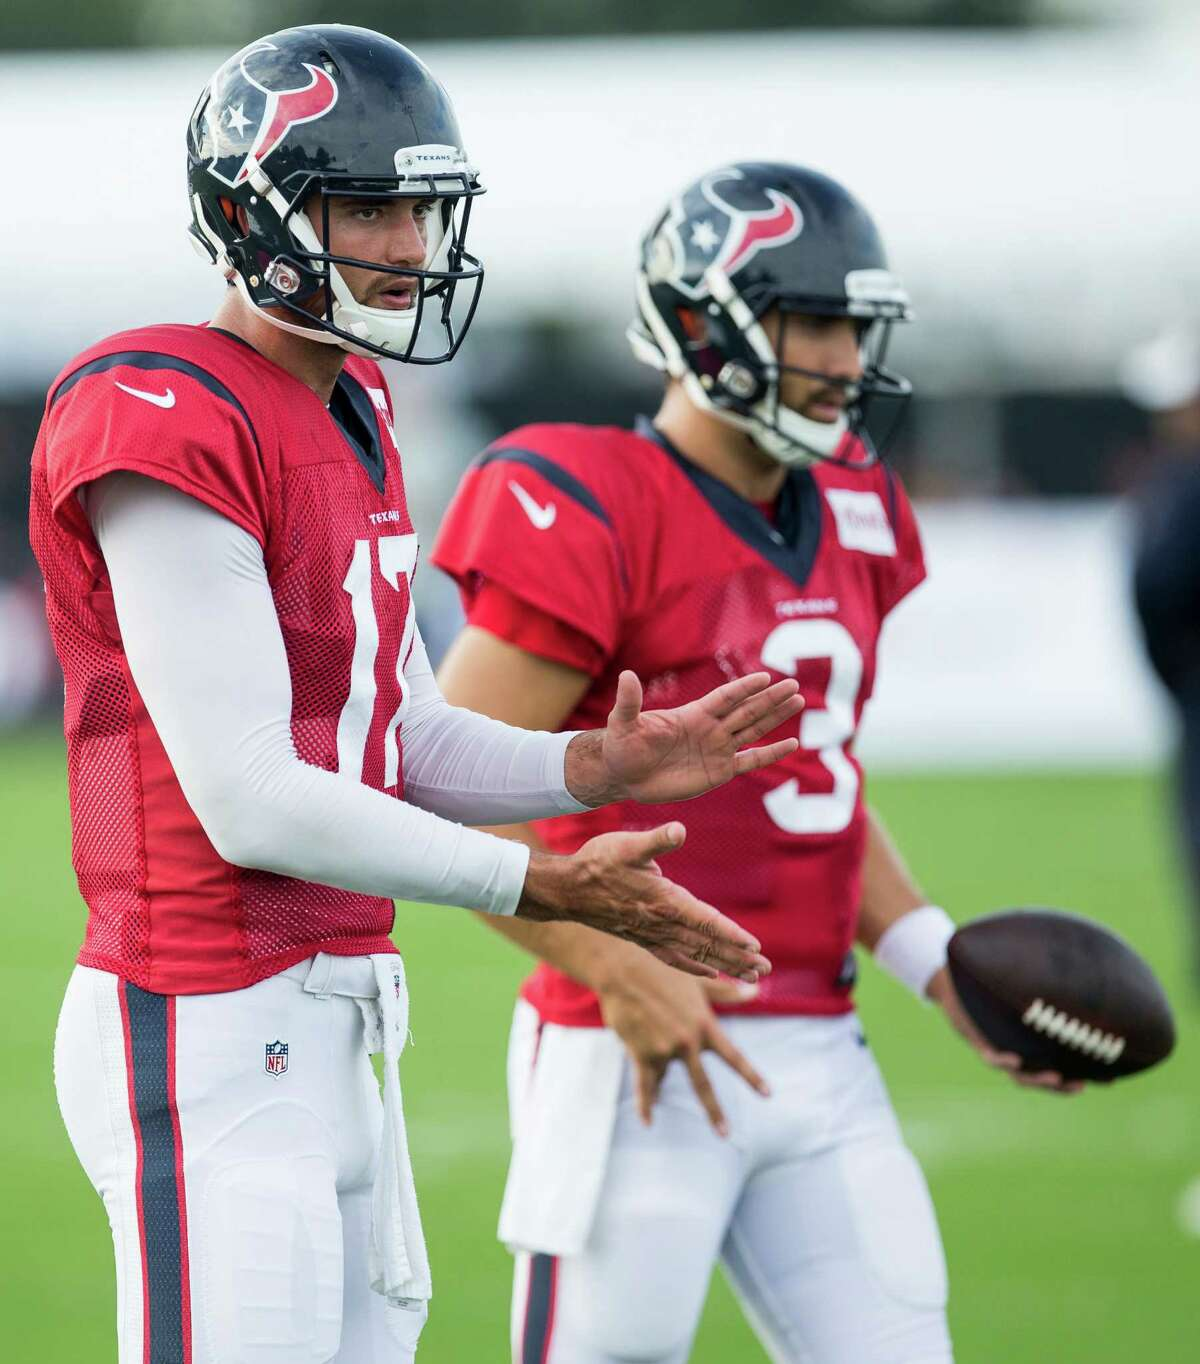 Houston Texans quarterbacks Brock Osweiler (17) and Tom Savage (3) warm up during a joint training camp practice between the Texans and Saints at Houston Methodist Training Center on Thursday, Aug. 18, 2016, in Houston.